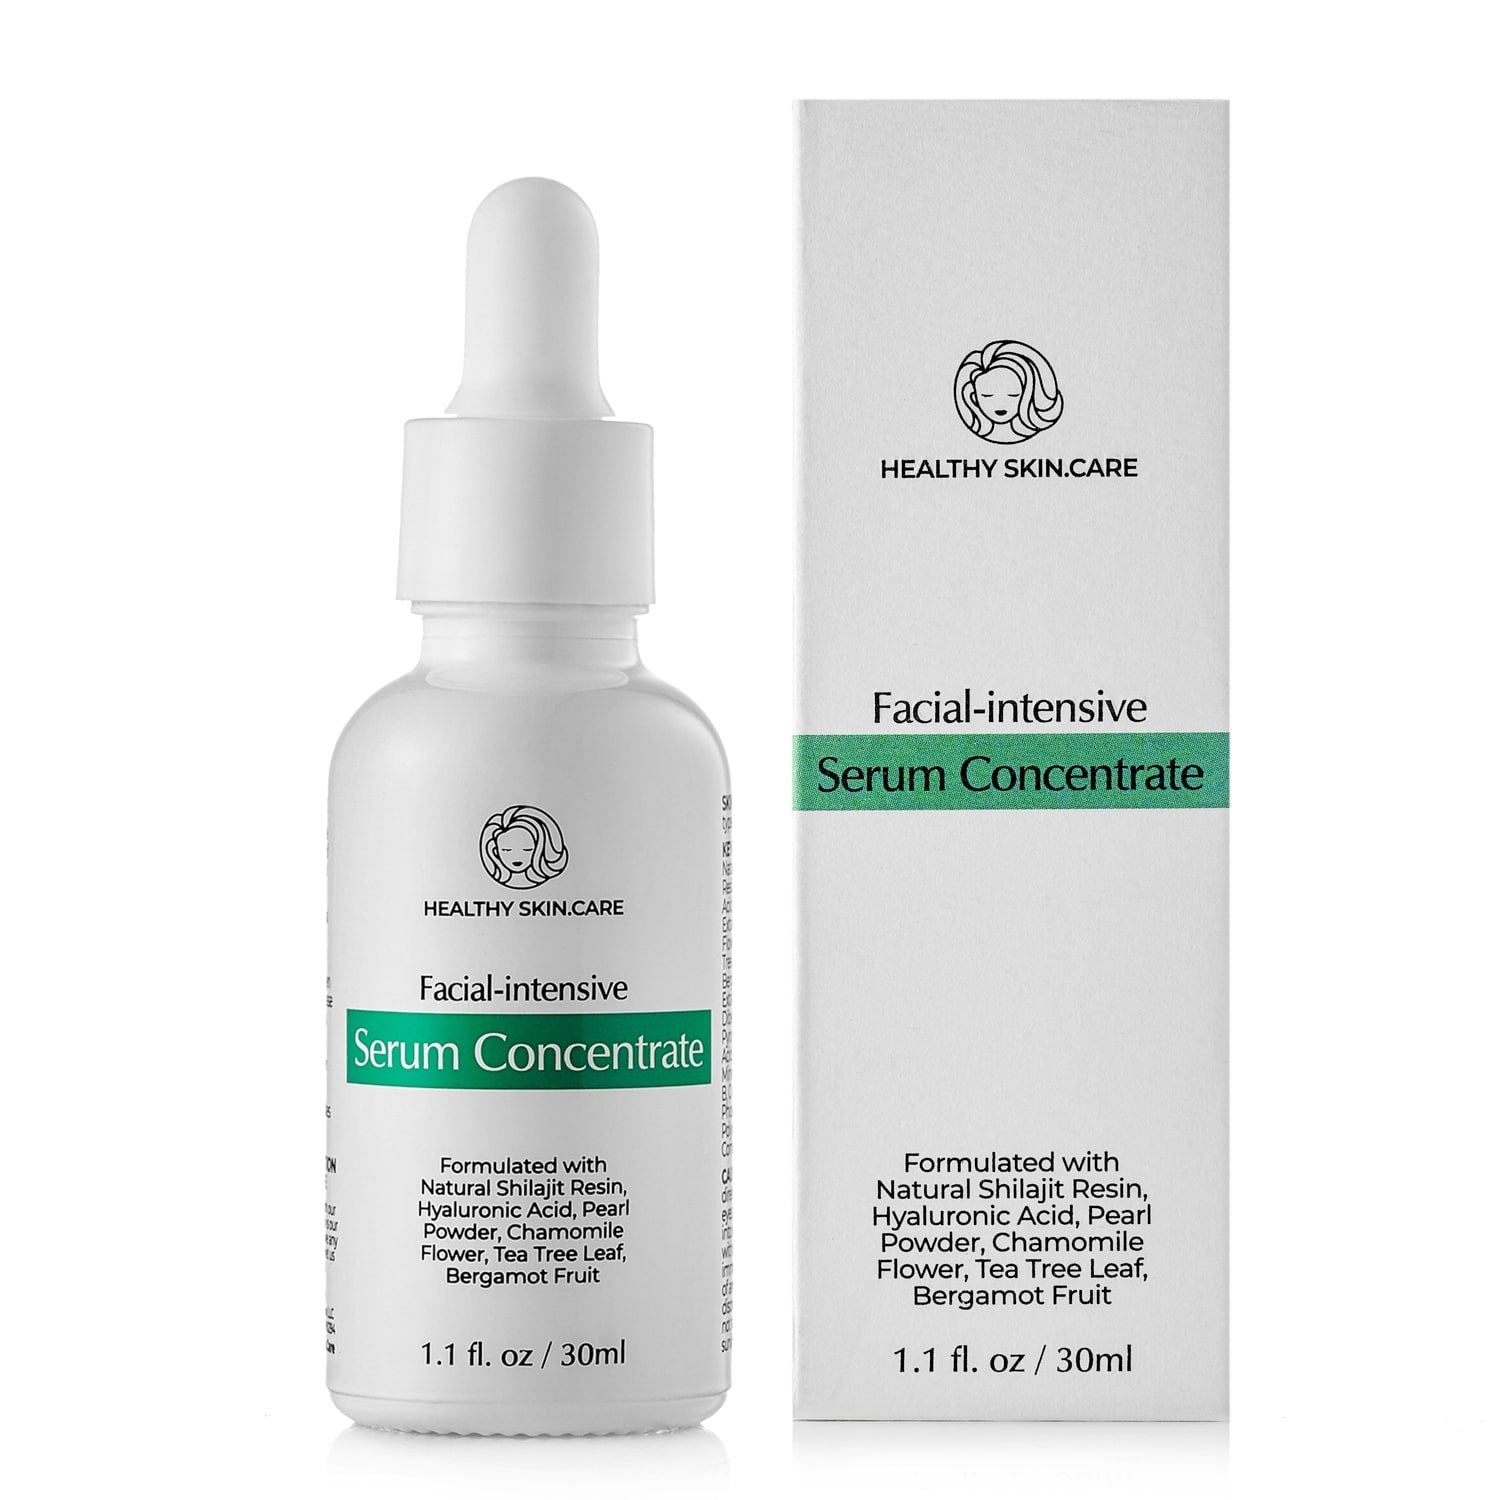 facial intensive serum concentrate